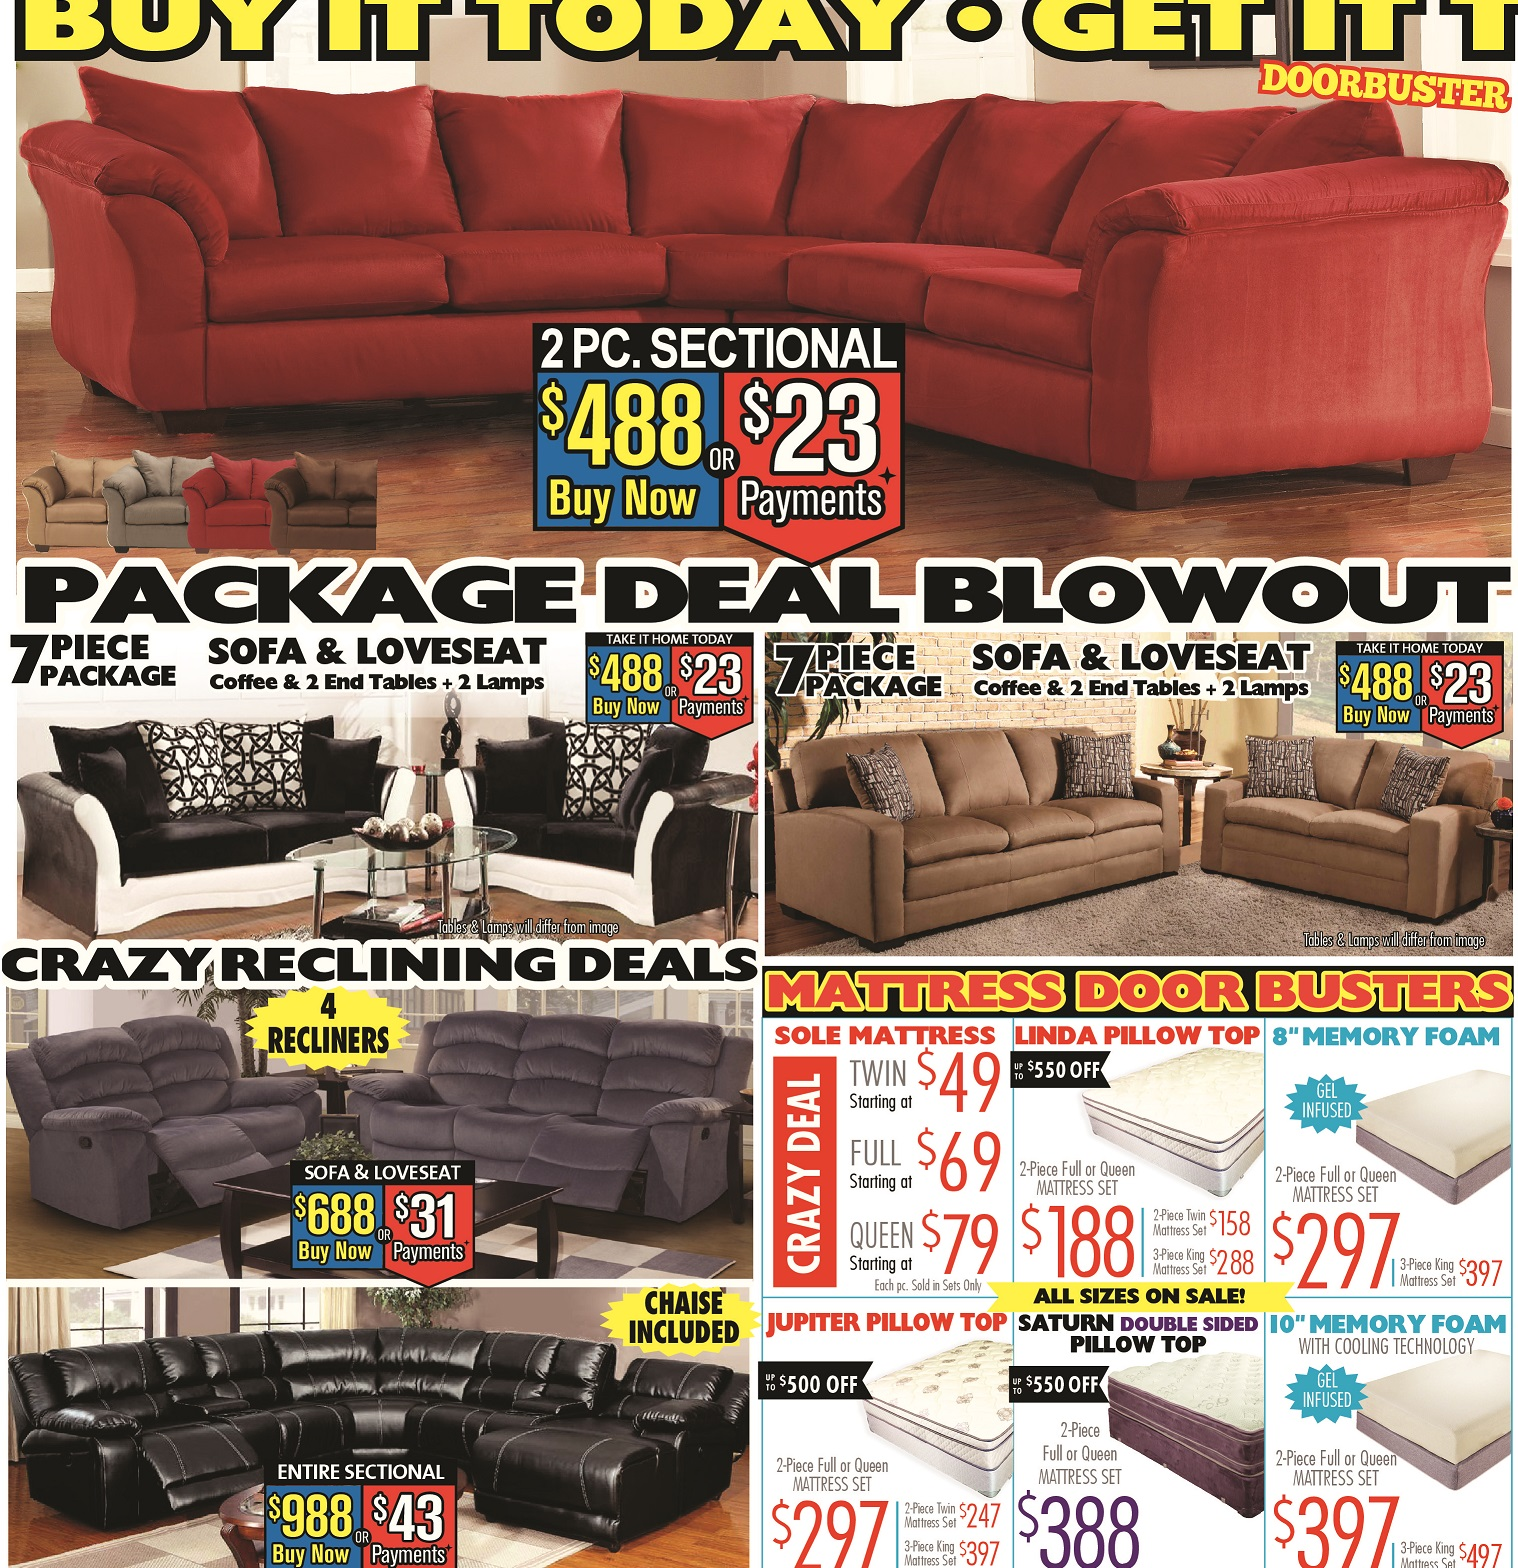 Price Busters Discount Furniture   Furniture Store   Baltimore, MD 21223